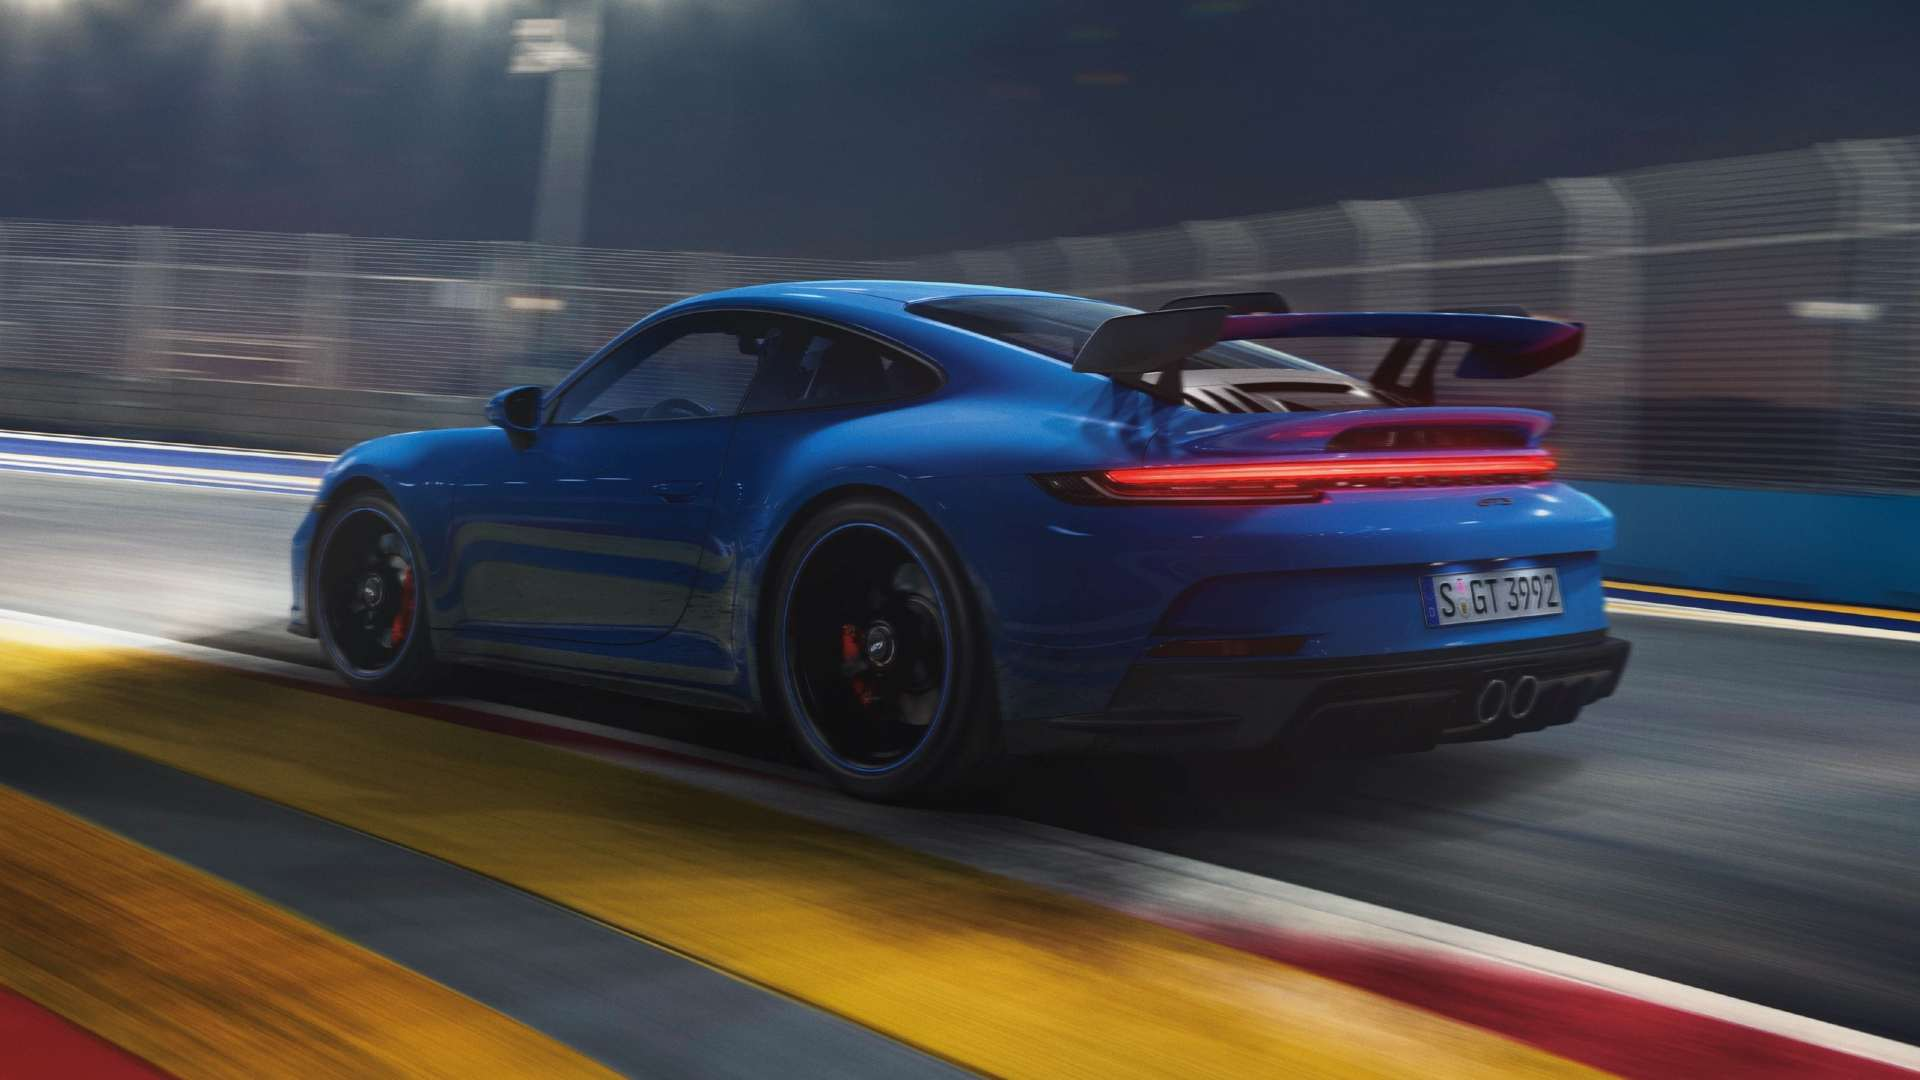 All-new Porsche 911 GT3 debuts with race car-derived 510hp flat-six engine, swan-neck rear wing